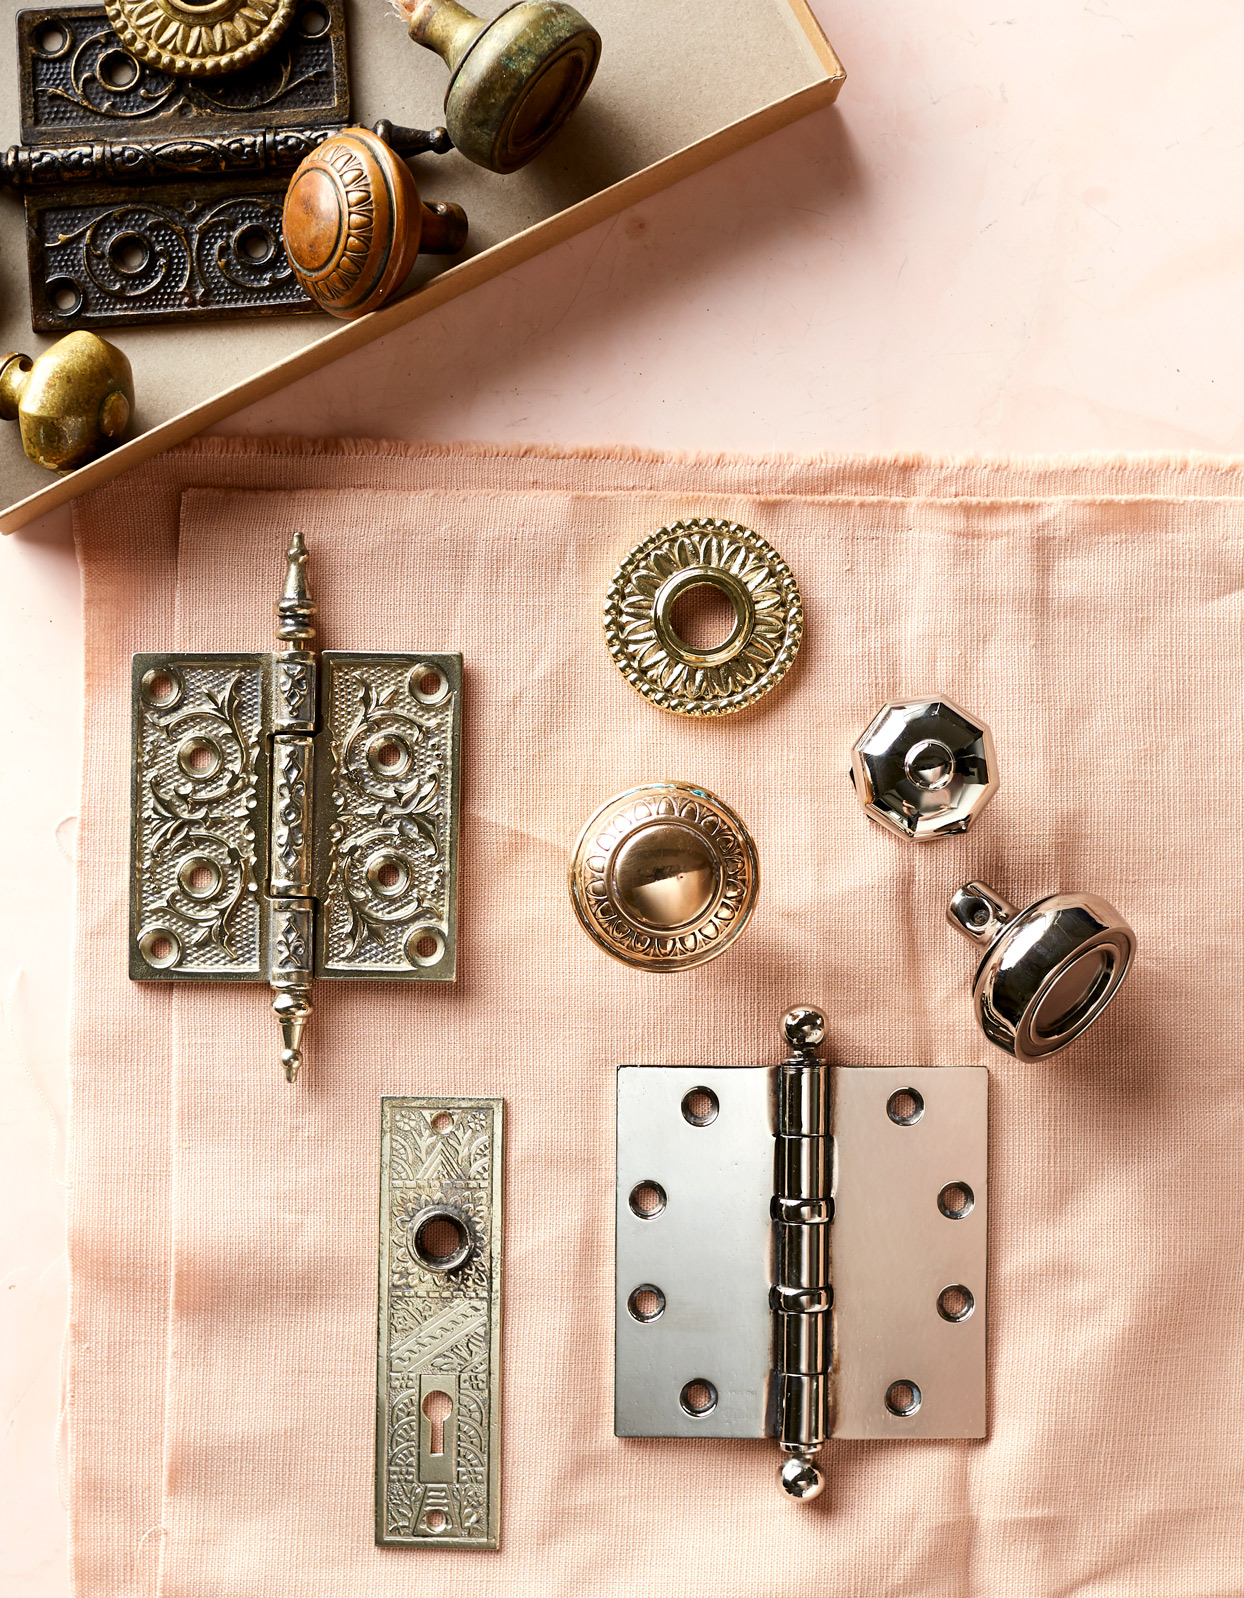 door knobs, hinges, and knockers